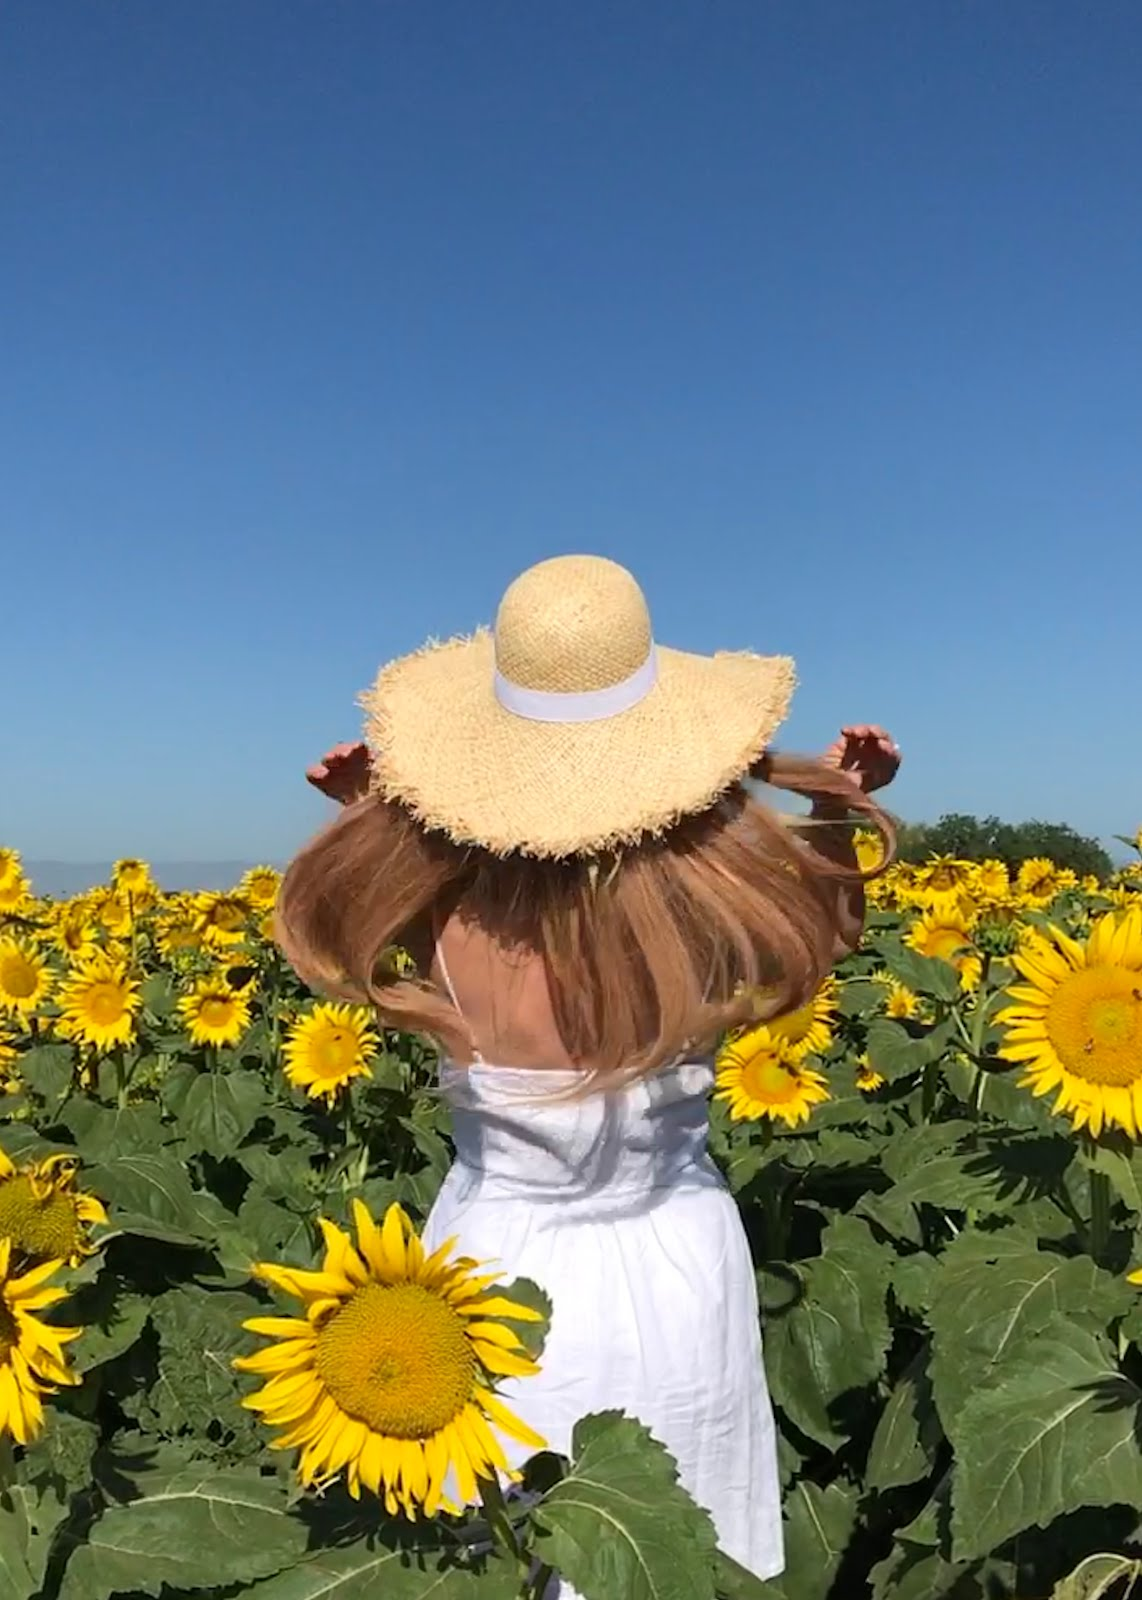 Visiting Sunflower Fields In Northern California